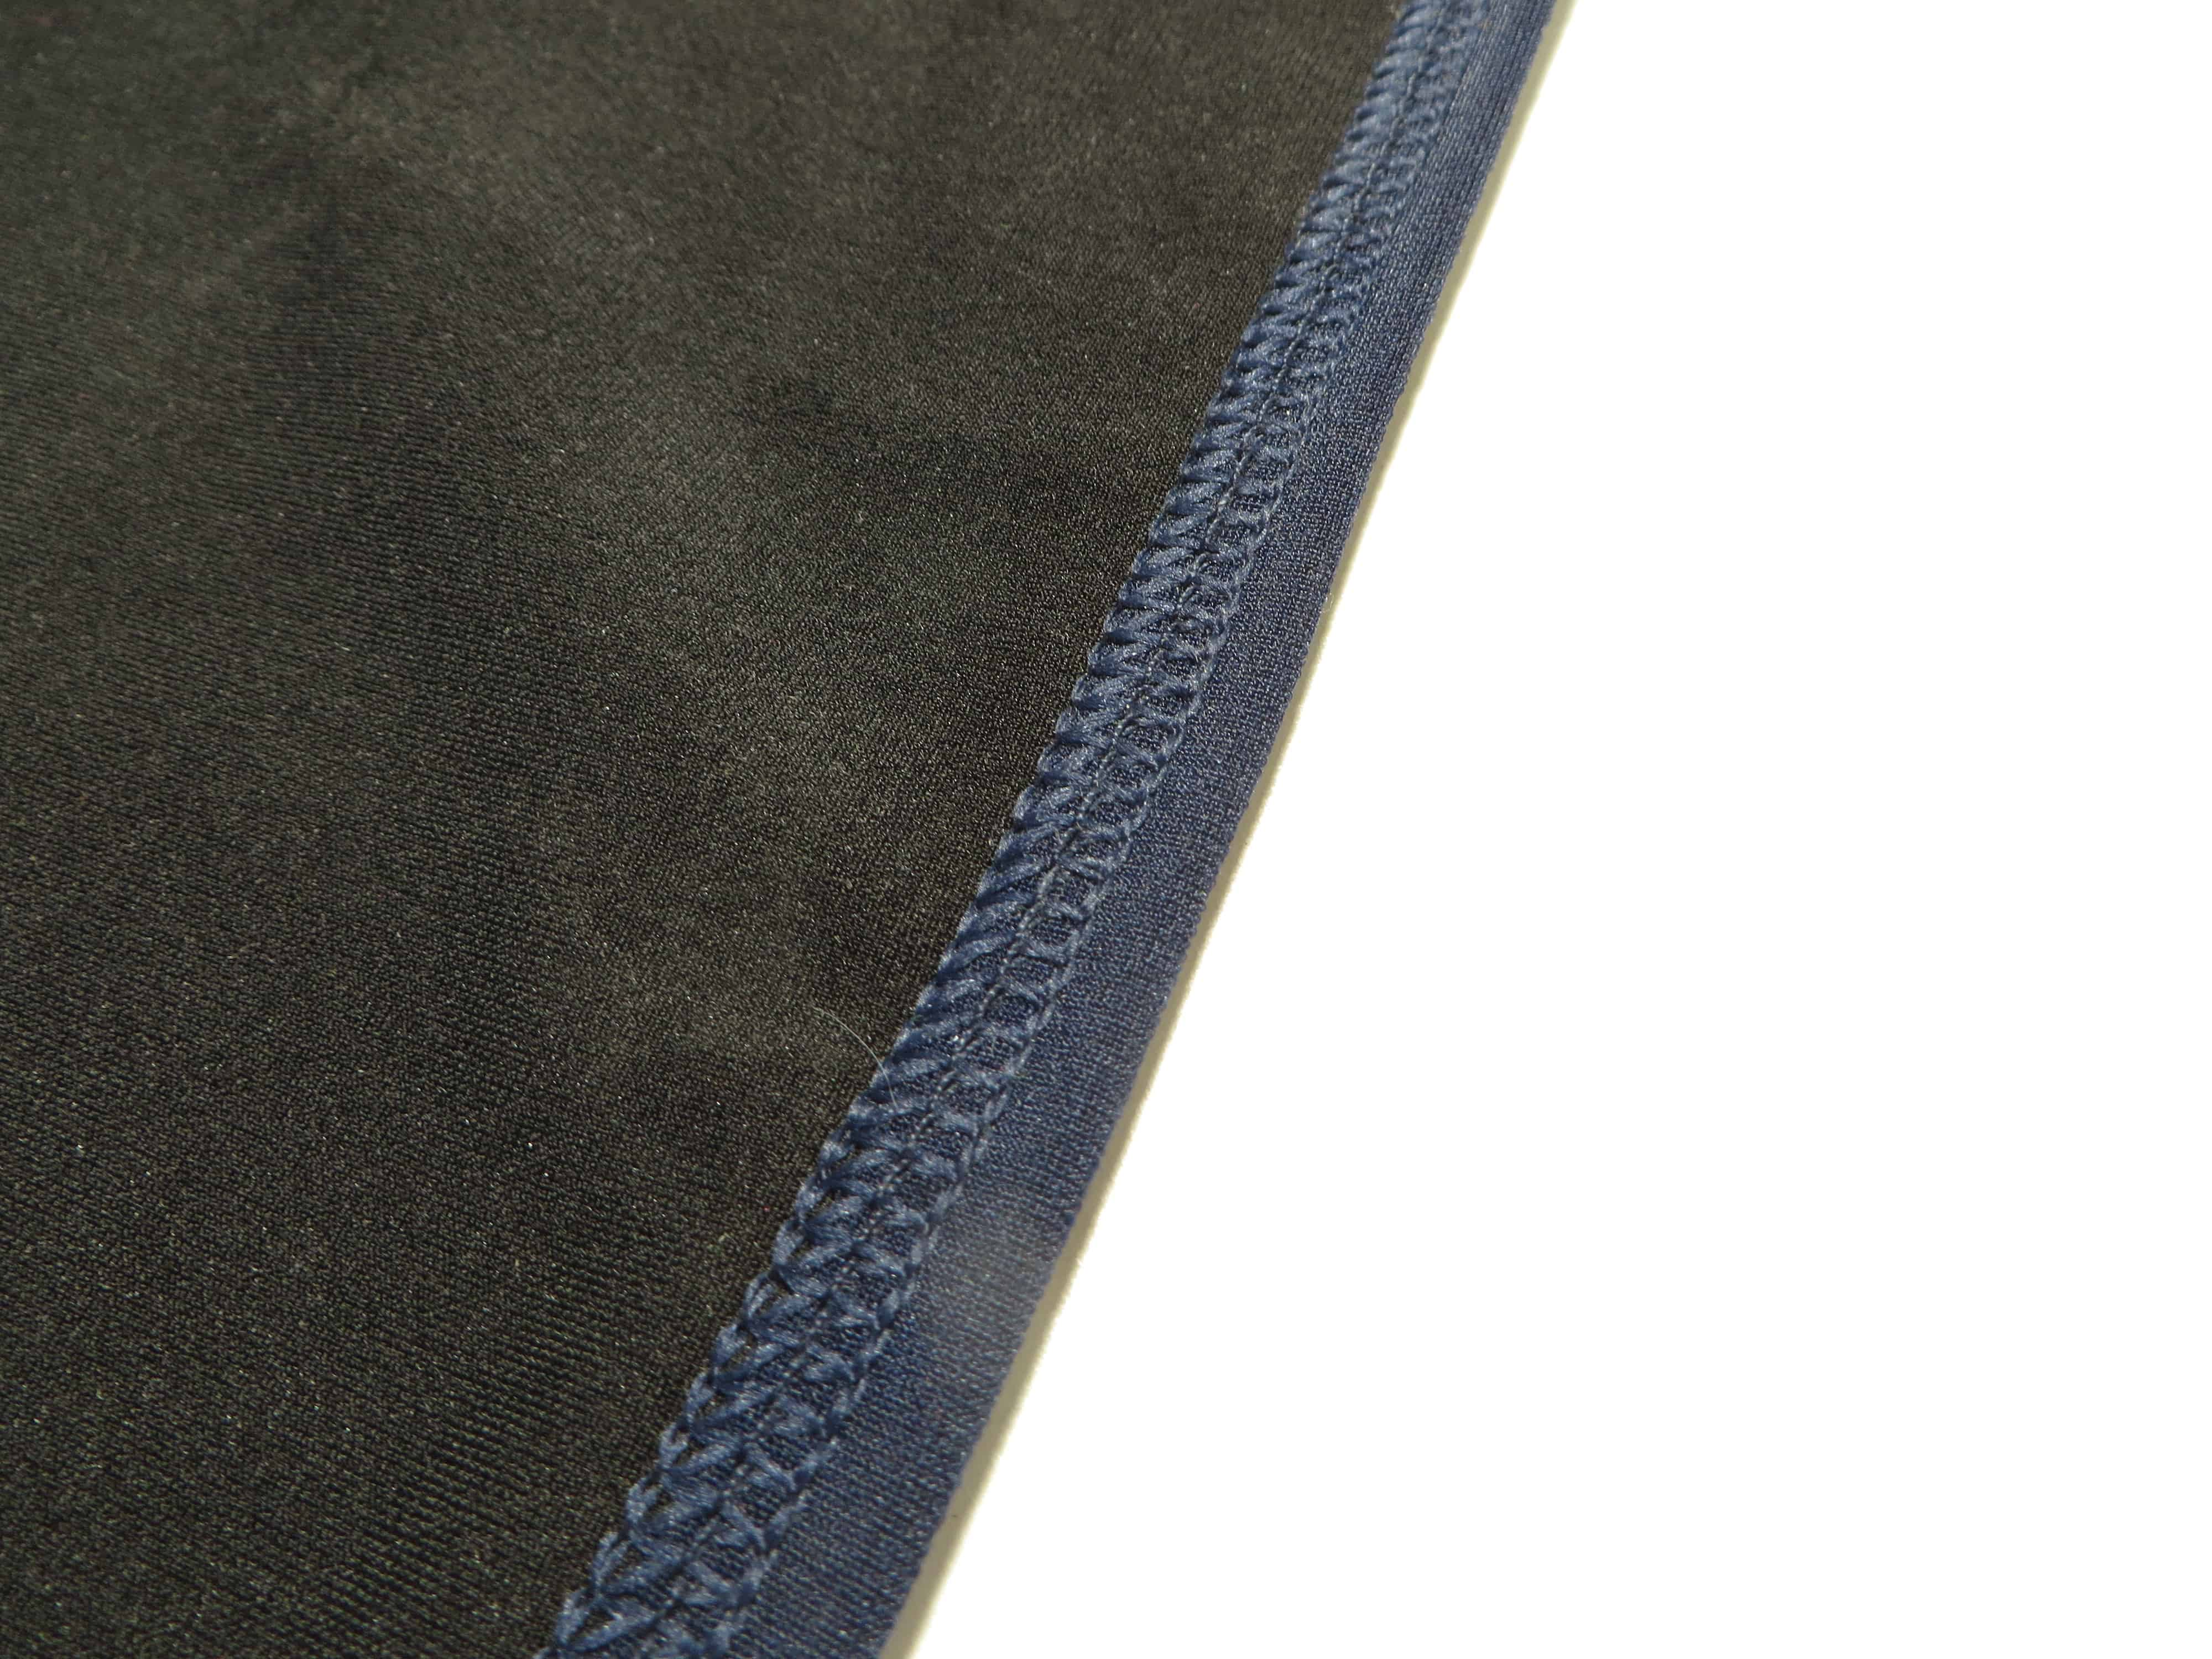 Coverstitch binding with three needles back side